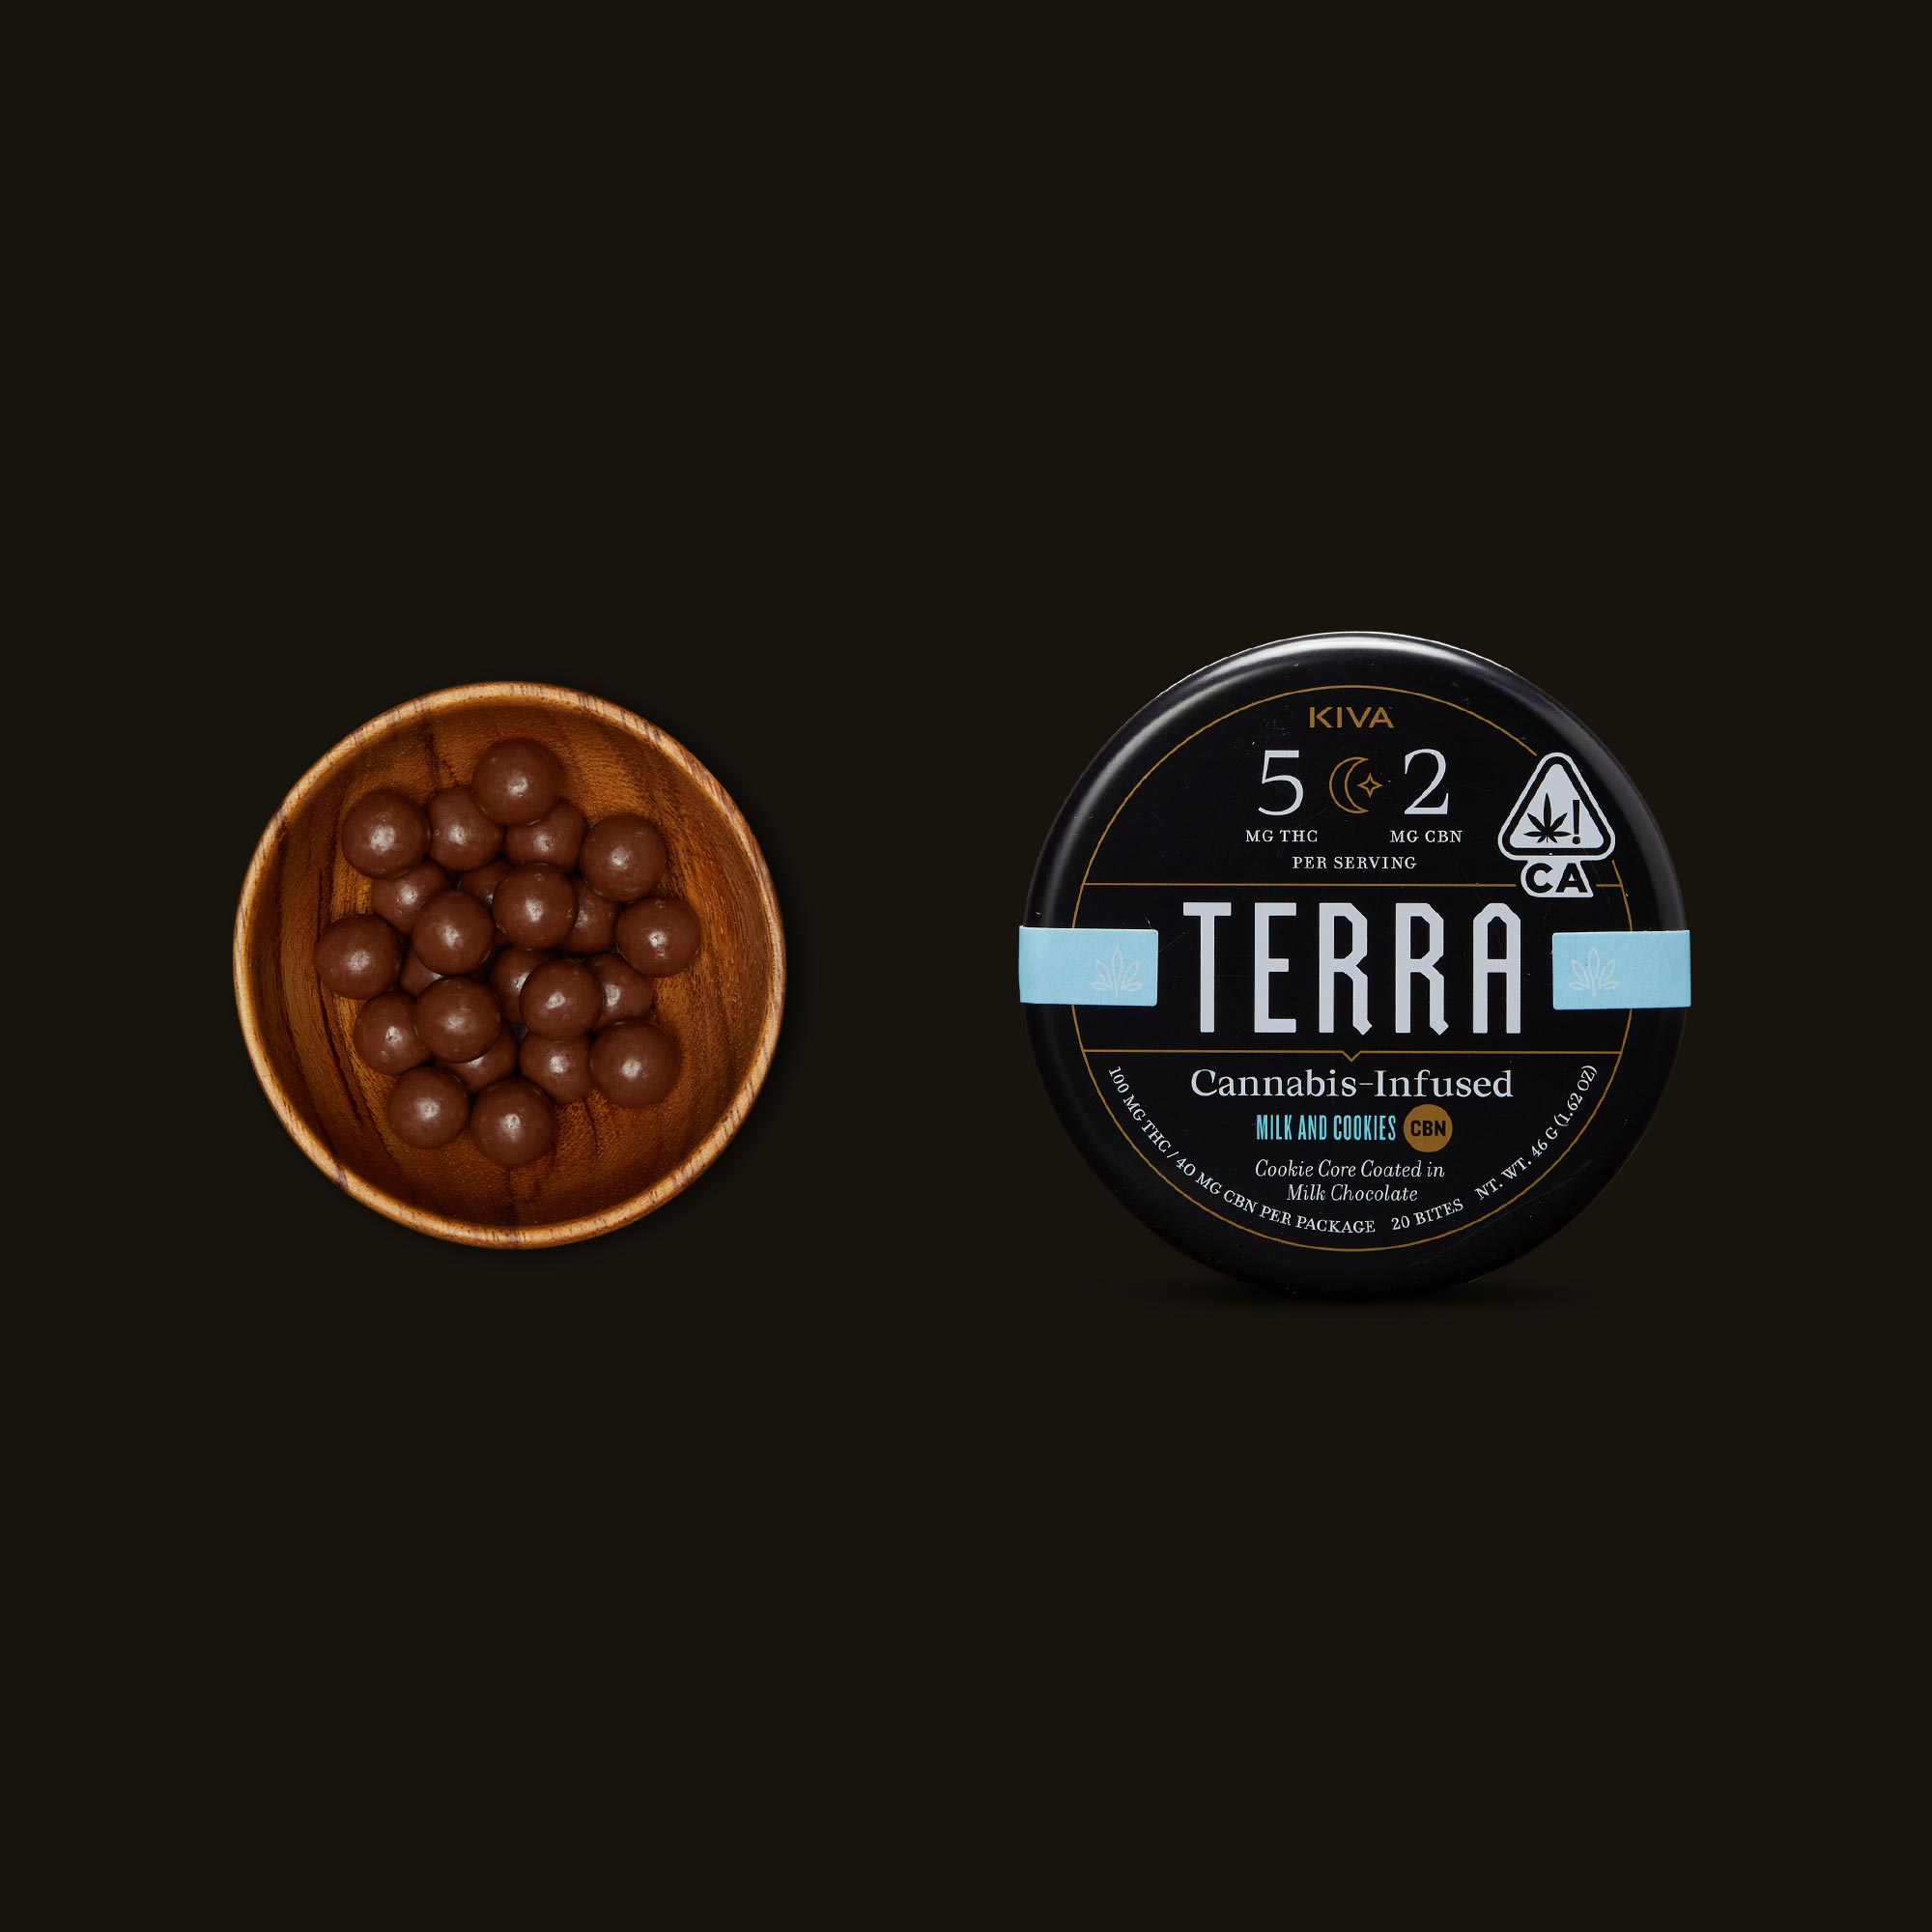 Terra Milk and Cookies CBN Bites by Kiva Confections